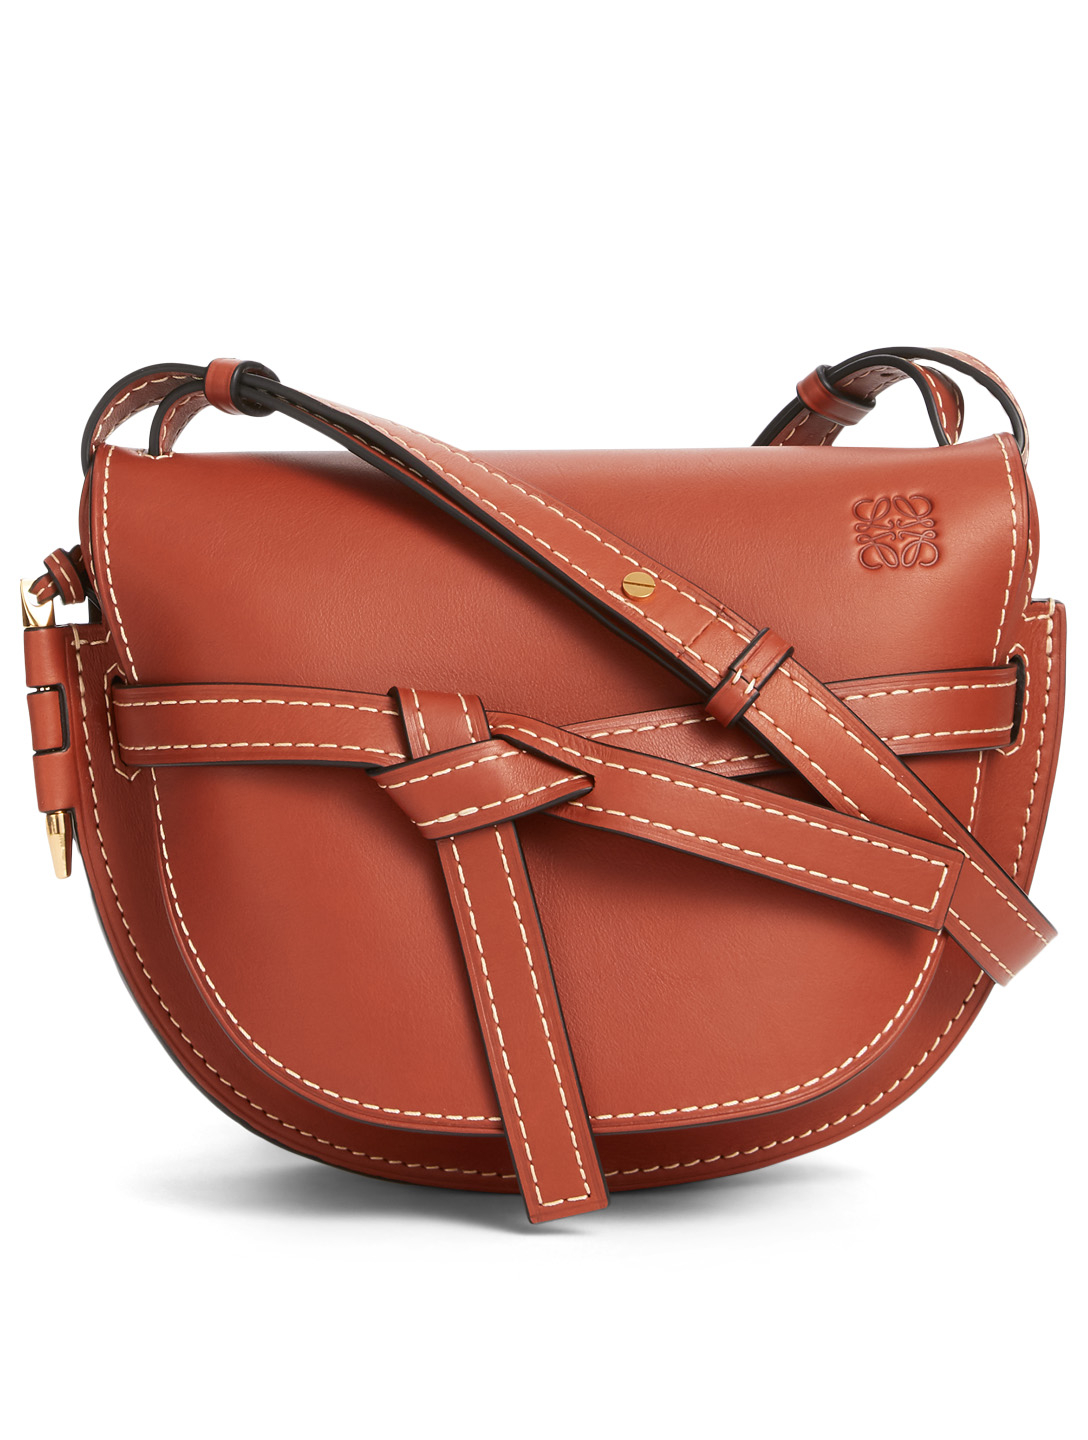 LOEWE Small Gate Leather Crossbody Bag Women's Neutral